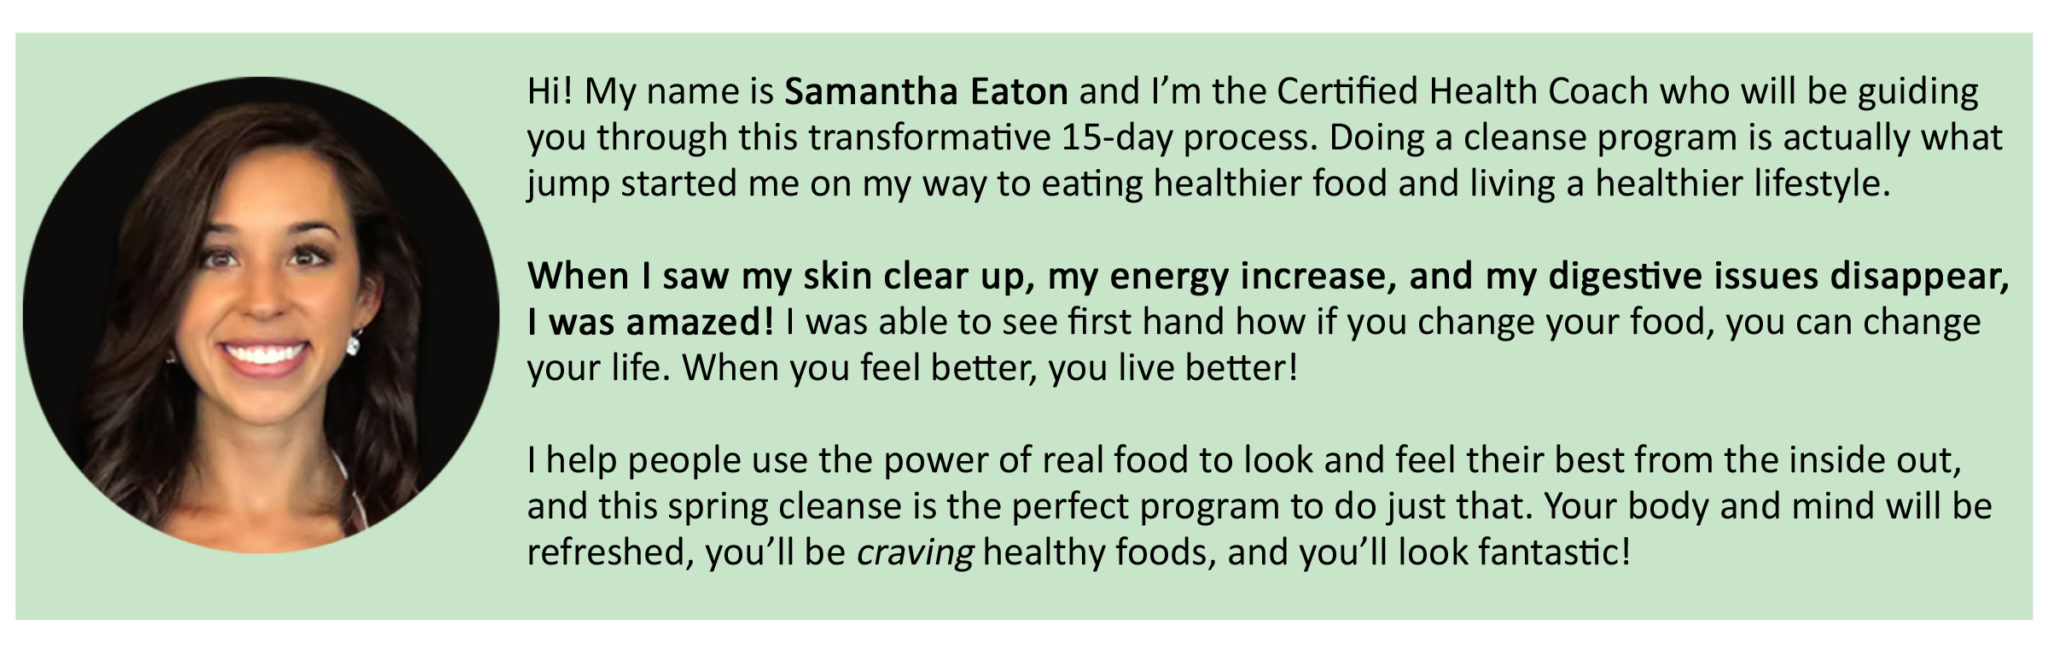 fall cleanse samantha eaton bio